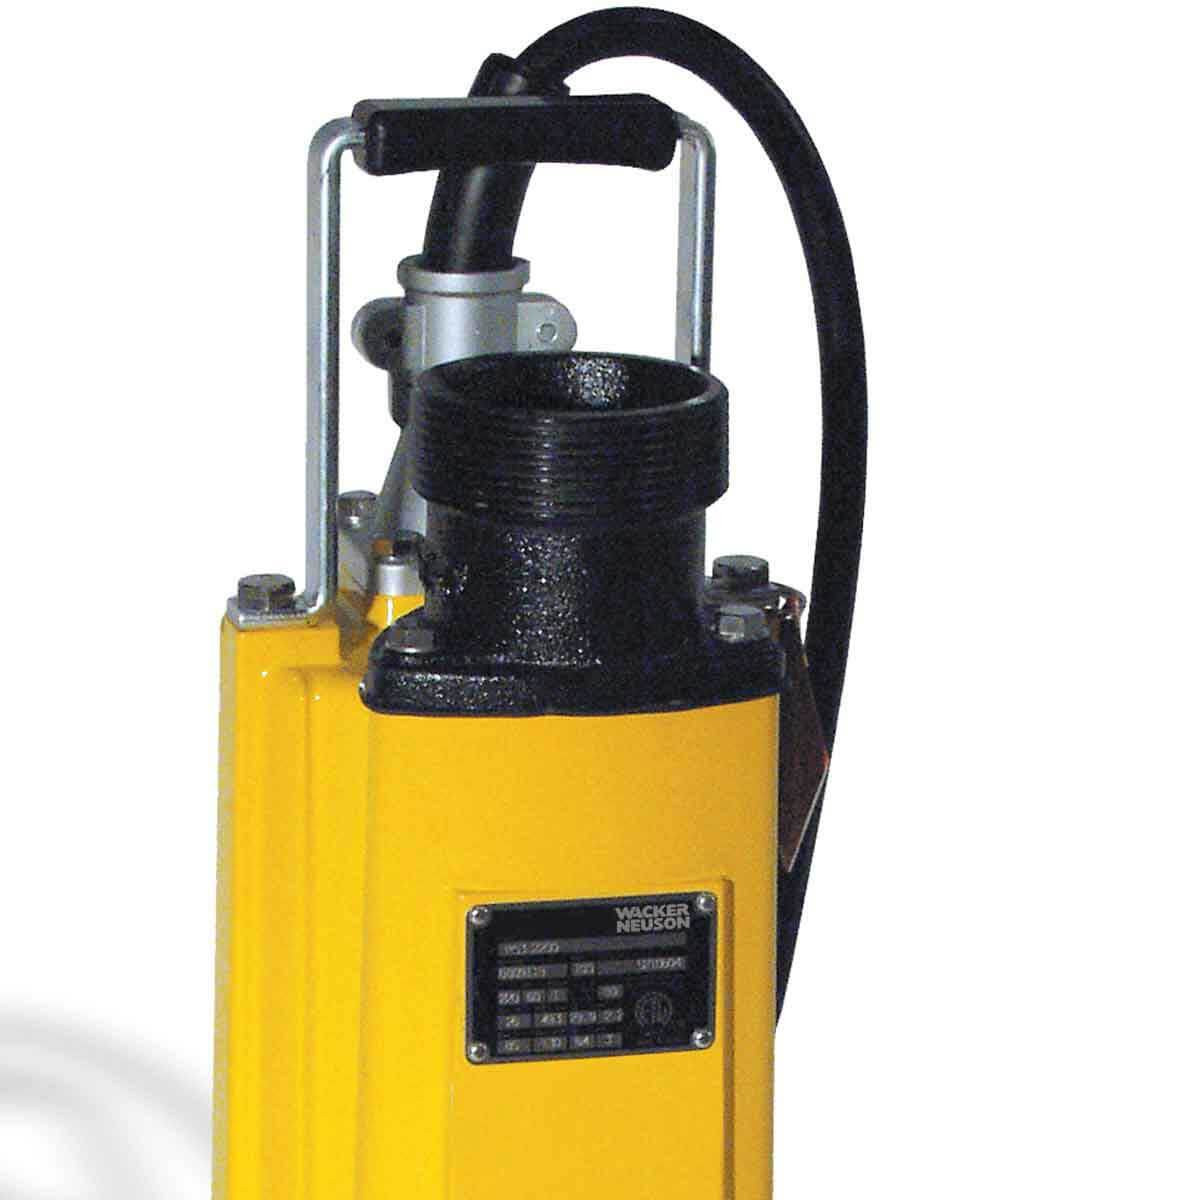 3 inch Submersible Pump 220V Wacker Neuson